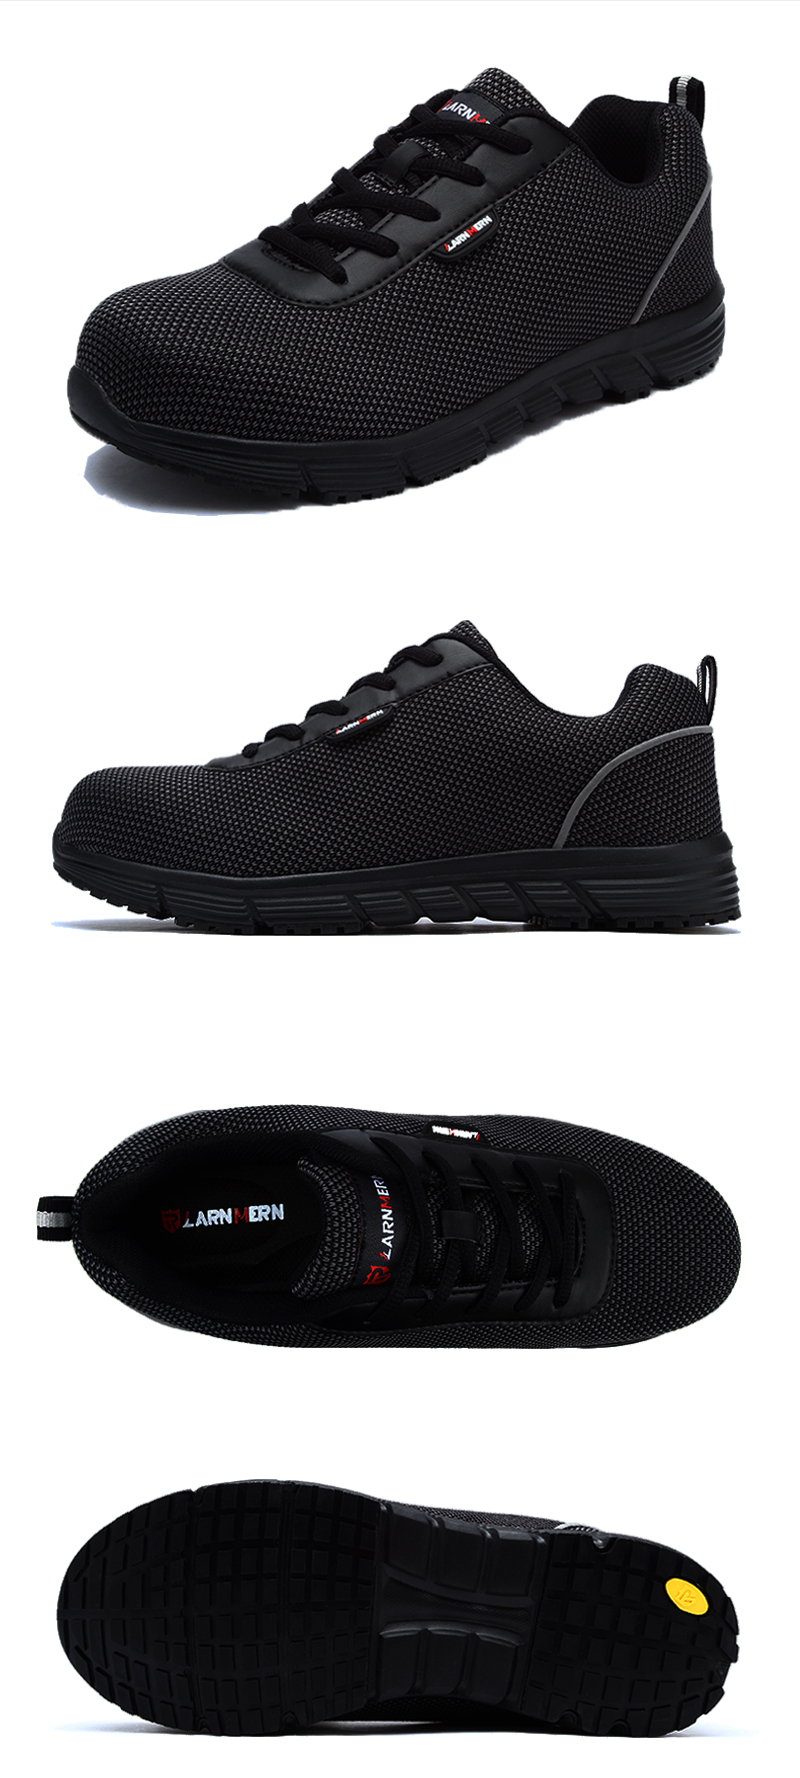 7c5d27746 Oakbayshoes The Most Comfortable Work Shoes Black Steel Toe Sneakers ...